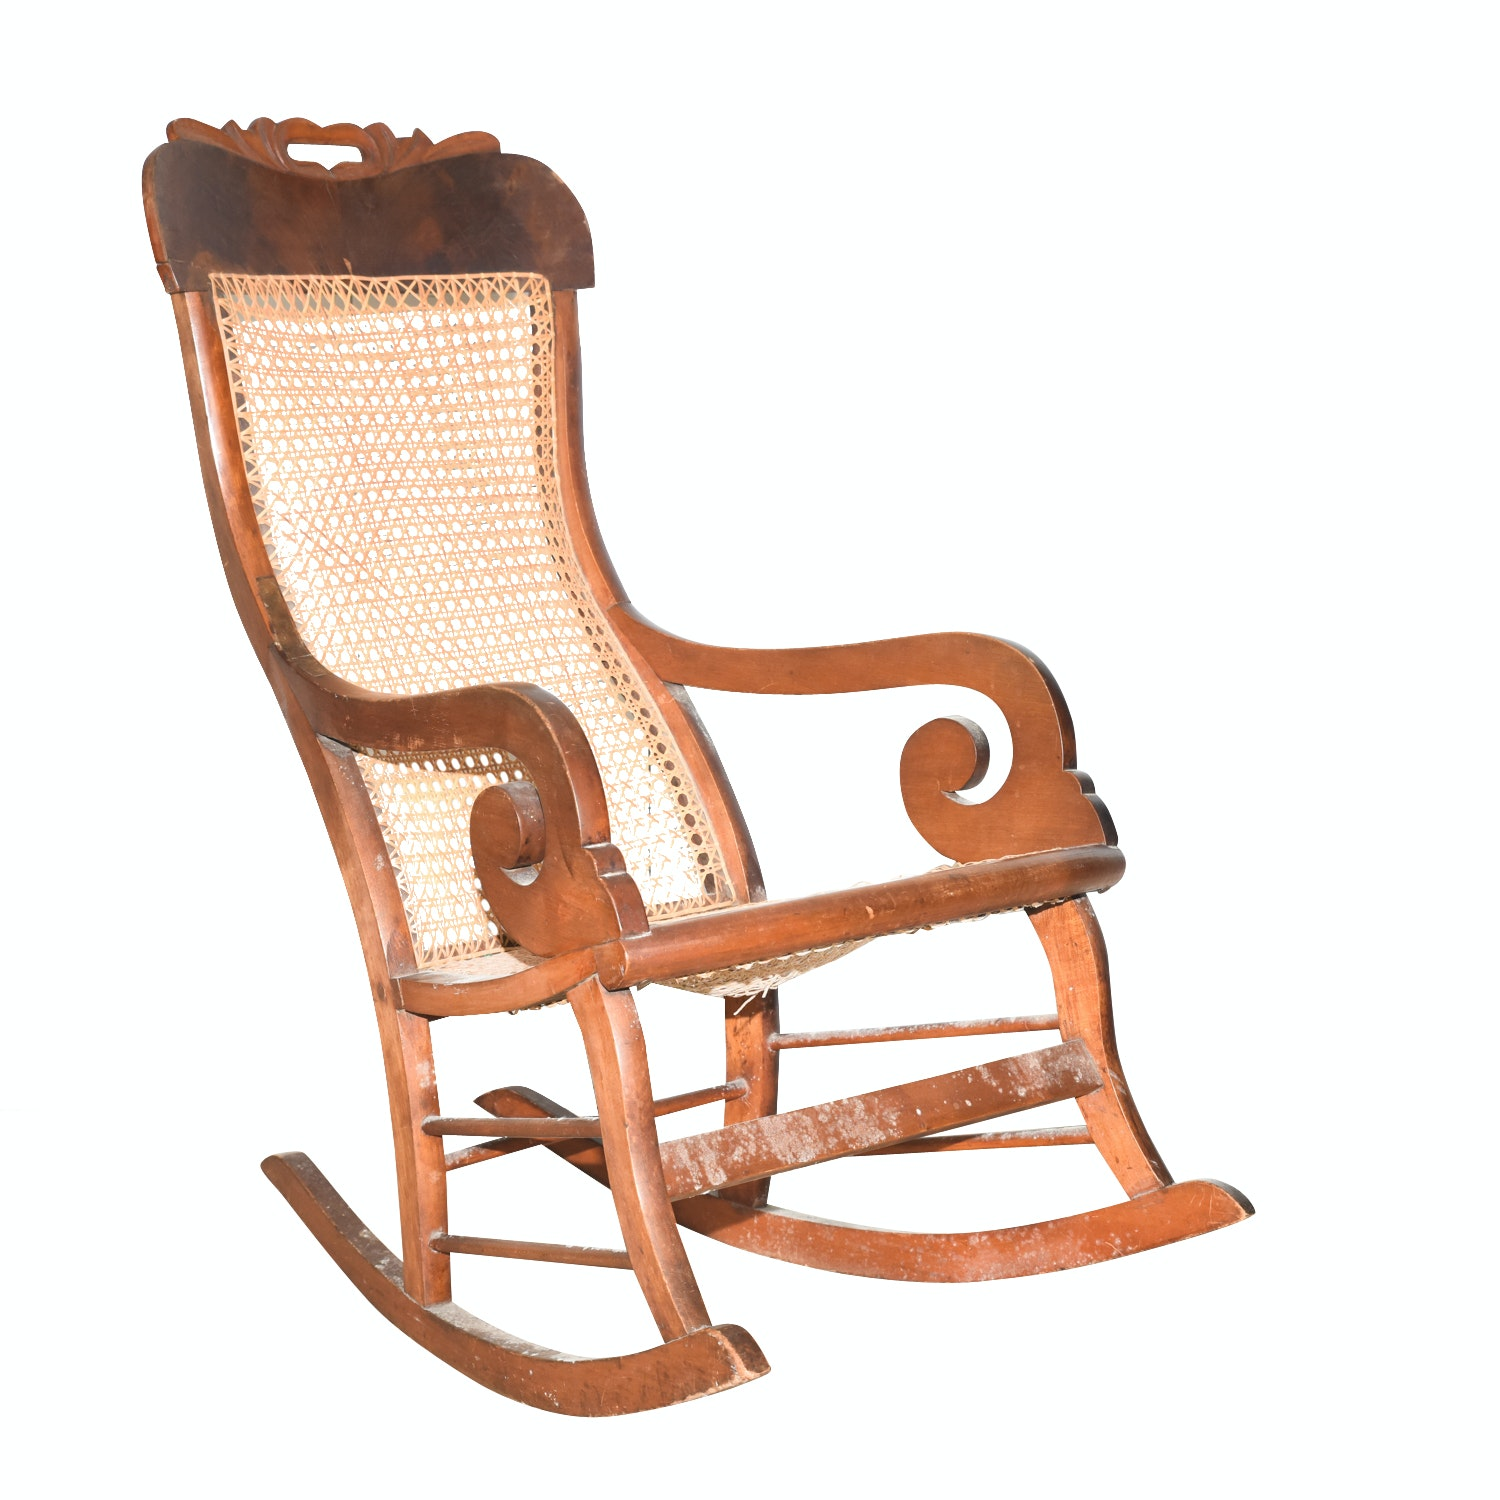 Wooden Cane Backed Rocking Chair by P. Gustine